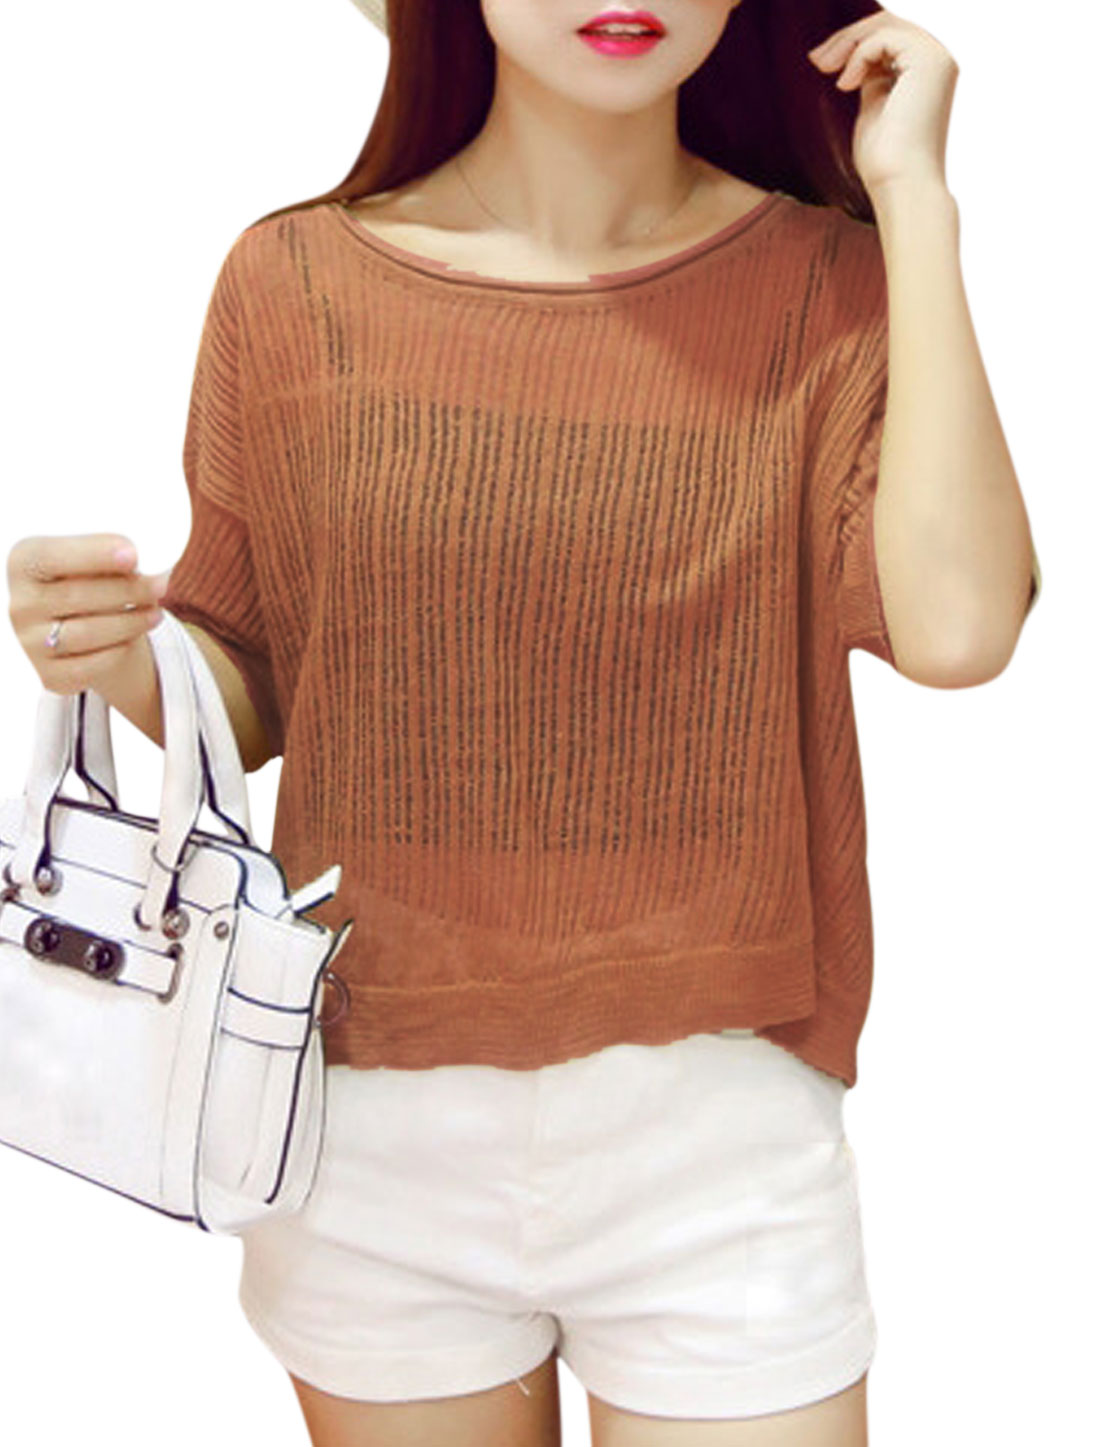 Women Elbow Sleeve Round Neck Loose Fit Casual Knit Blouse Camel XS